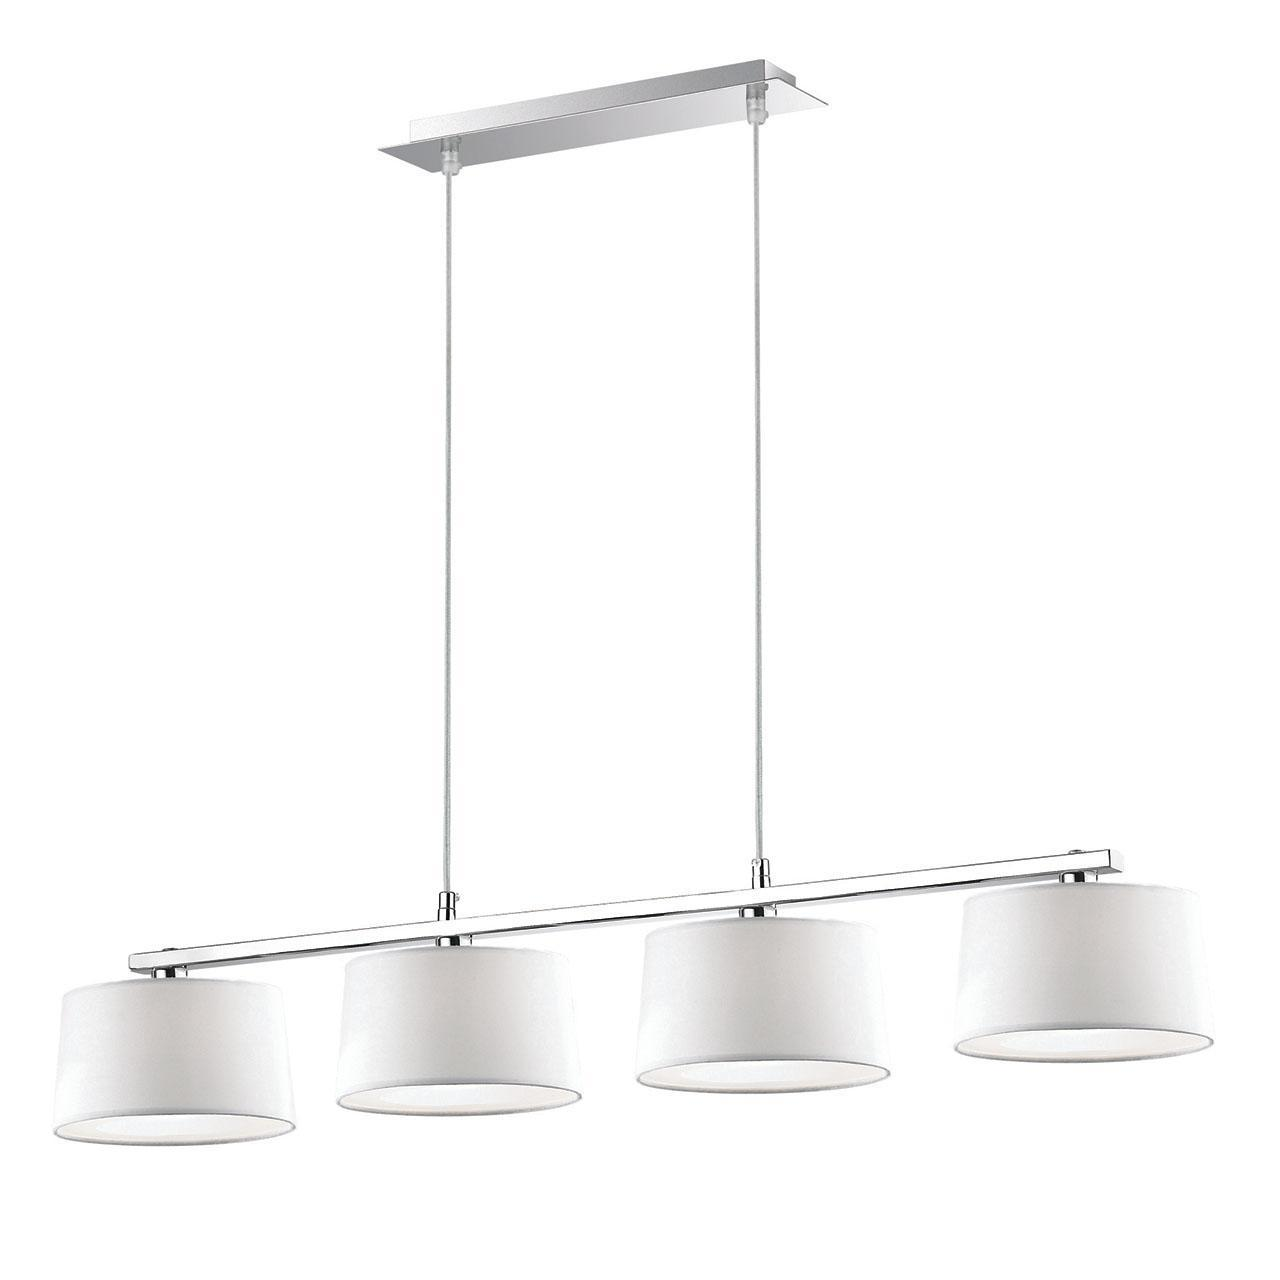 Люстра Ideal Lux Hilton SP4 Linear Bianco подвесная люстра ideal lux hilton hilton sp6 round nero